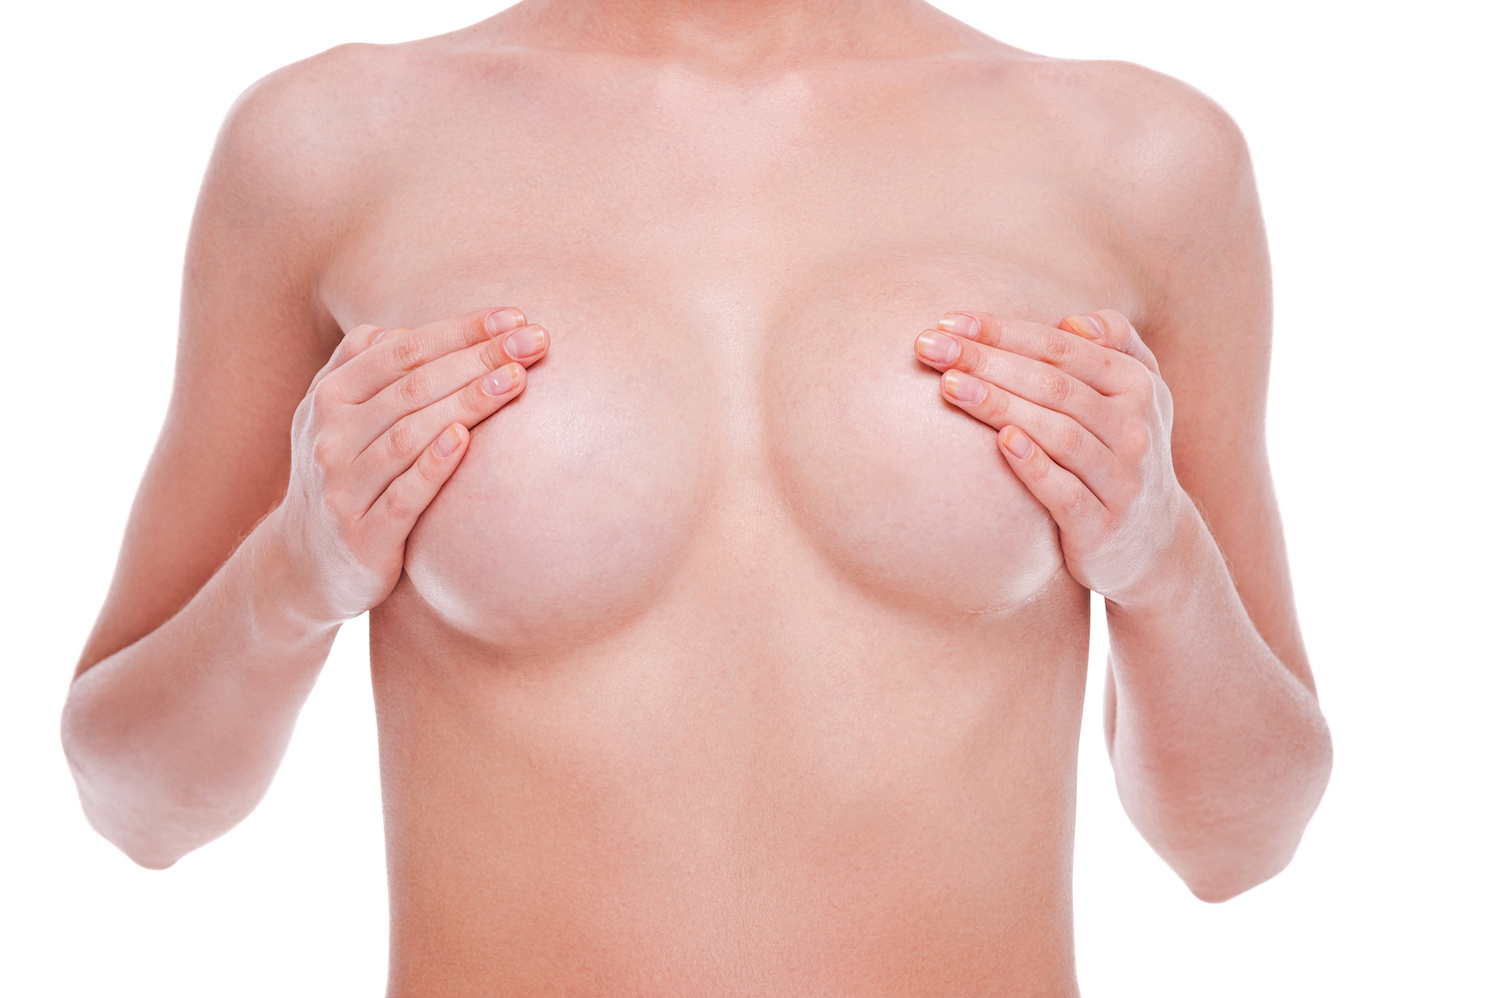 Secondary breast implant surgery